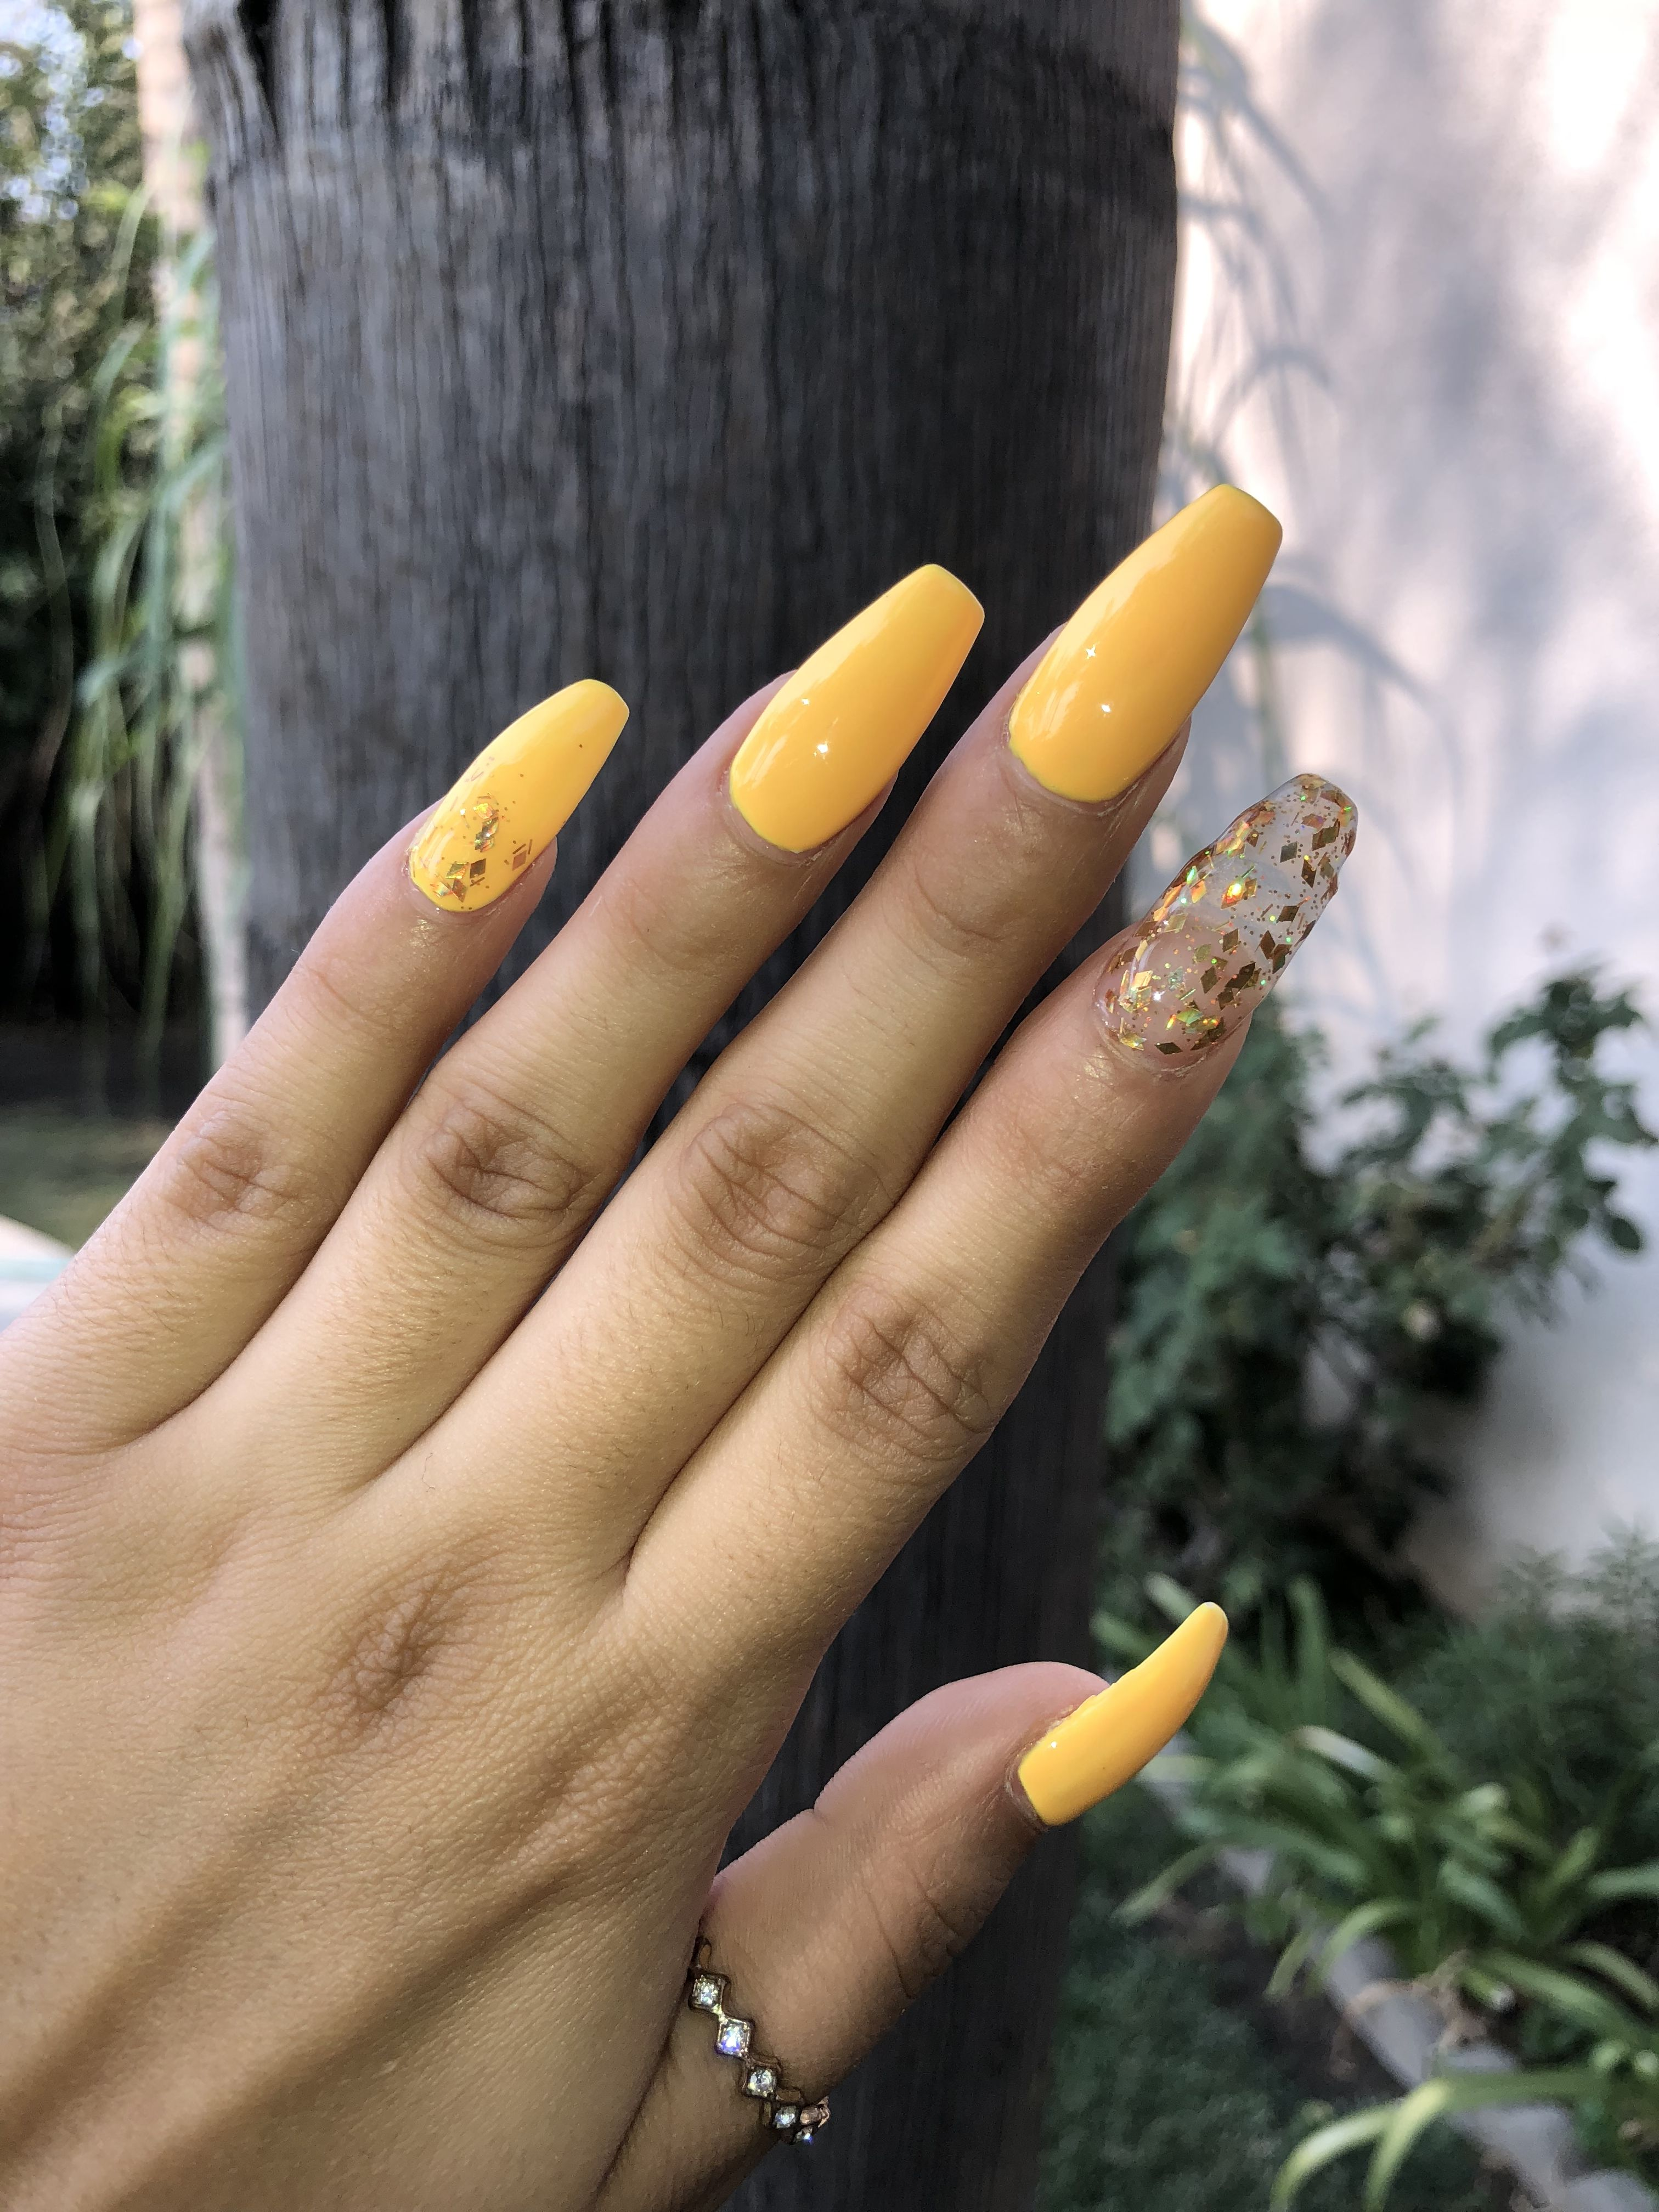 Yellow Coffin Nails Clear Glittery Nail Gold Glitter Long Coffin Nails Glittery Nails Gold Nails Coffin Nails Long